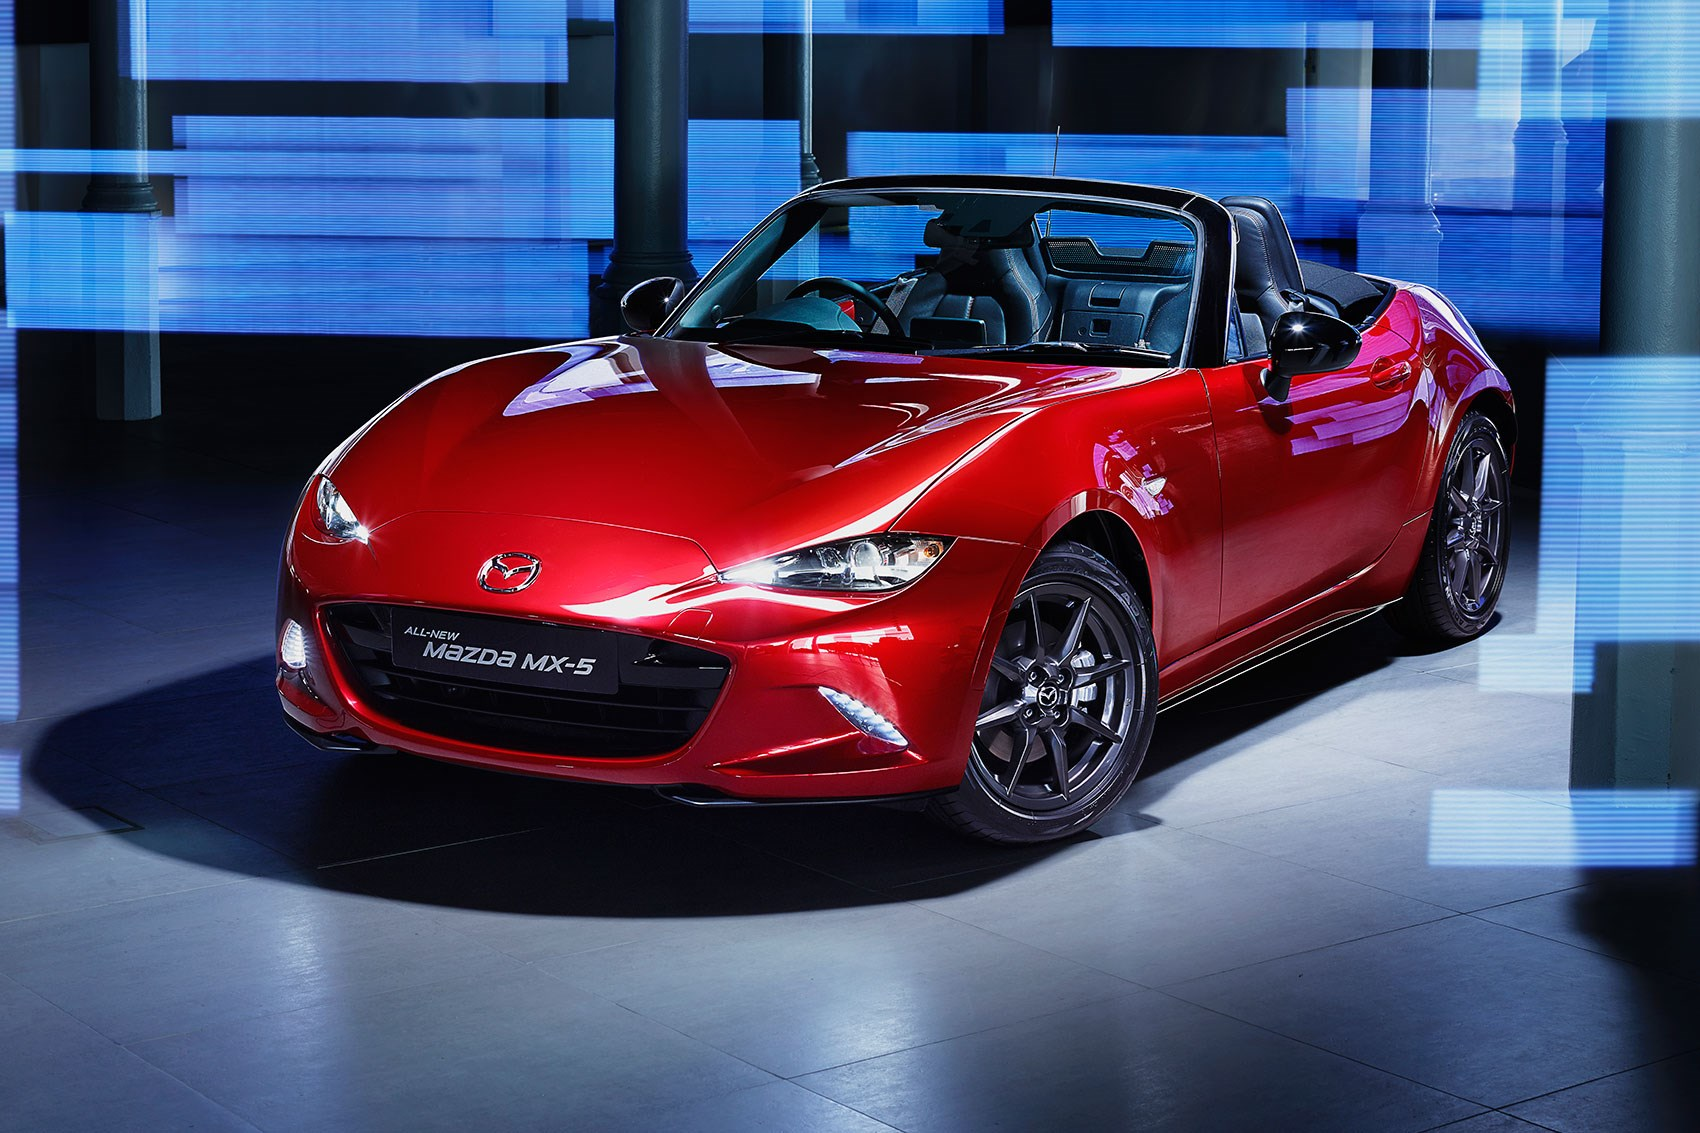 miata mazda mx new drive test car expert buy review